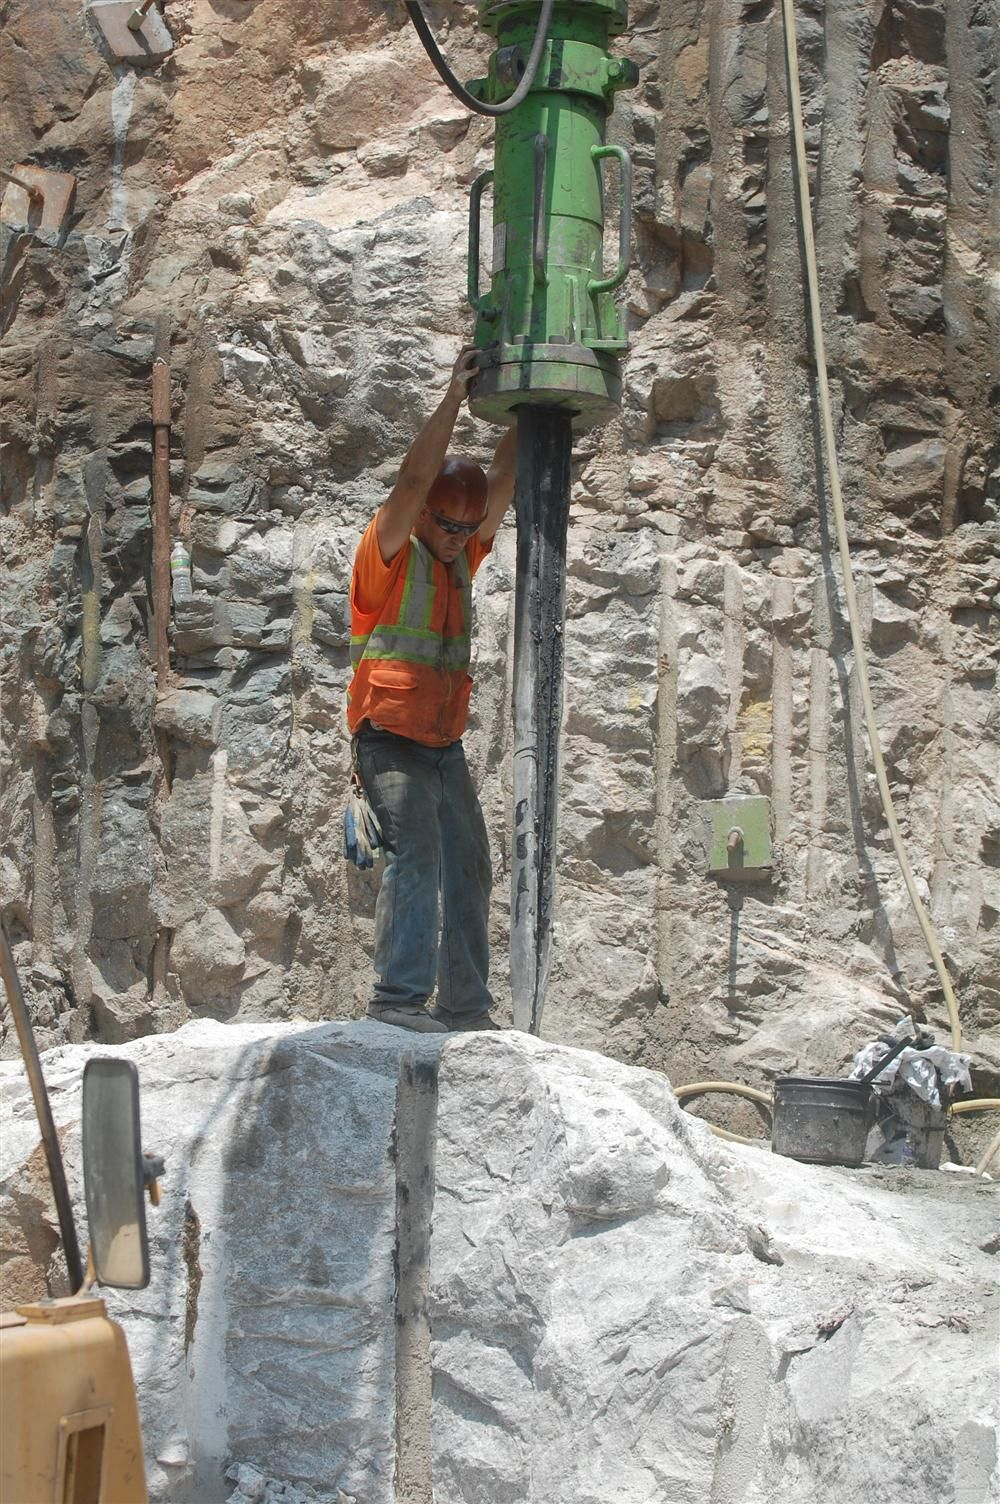 The larger Yamamoto model HRB-1700 being used for vertical rock splitting.